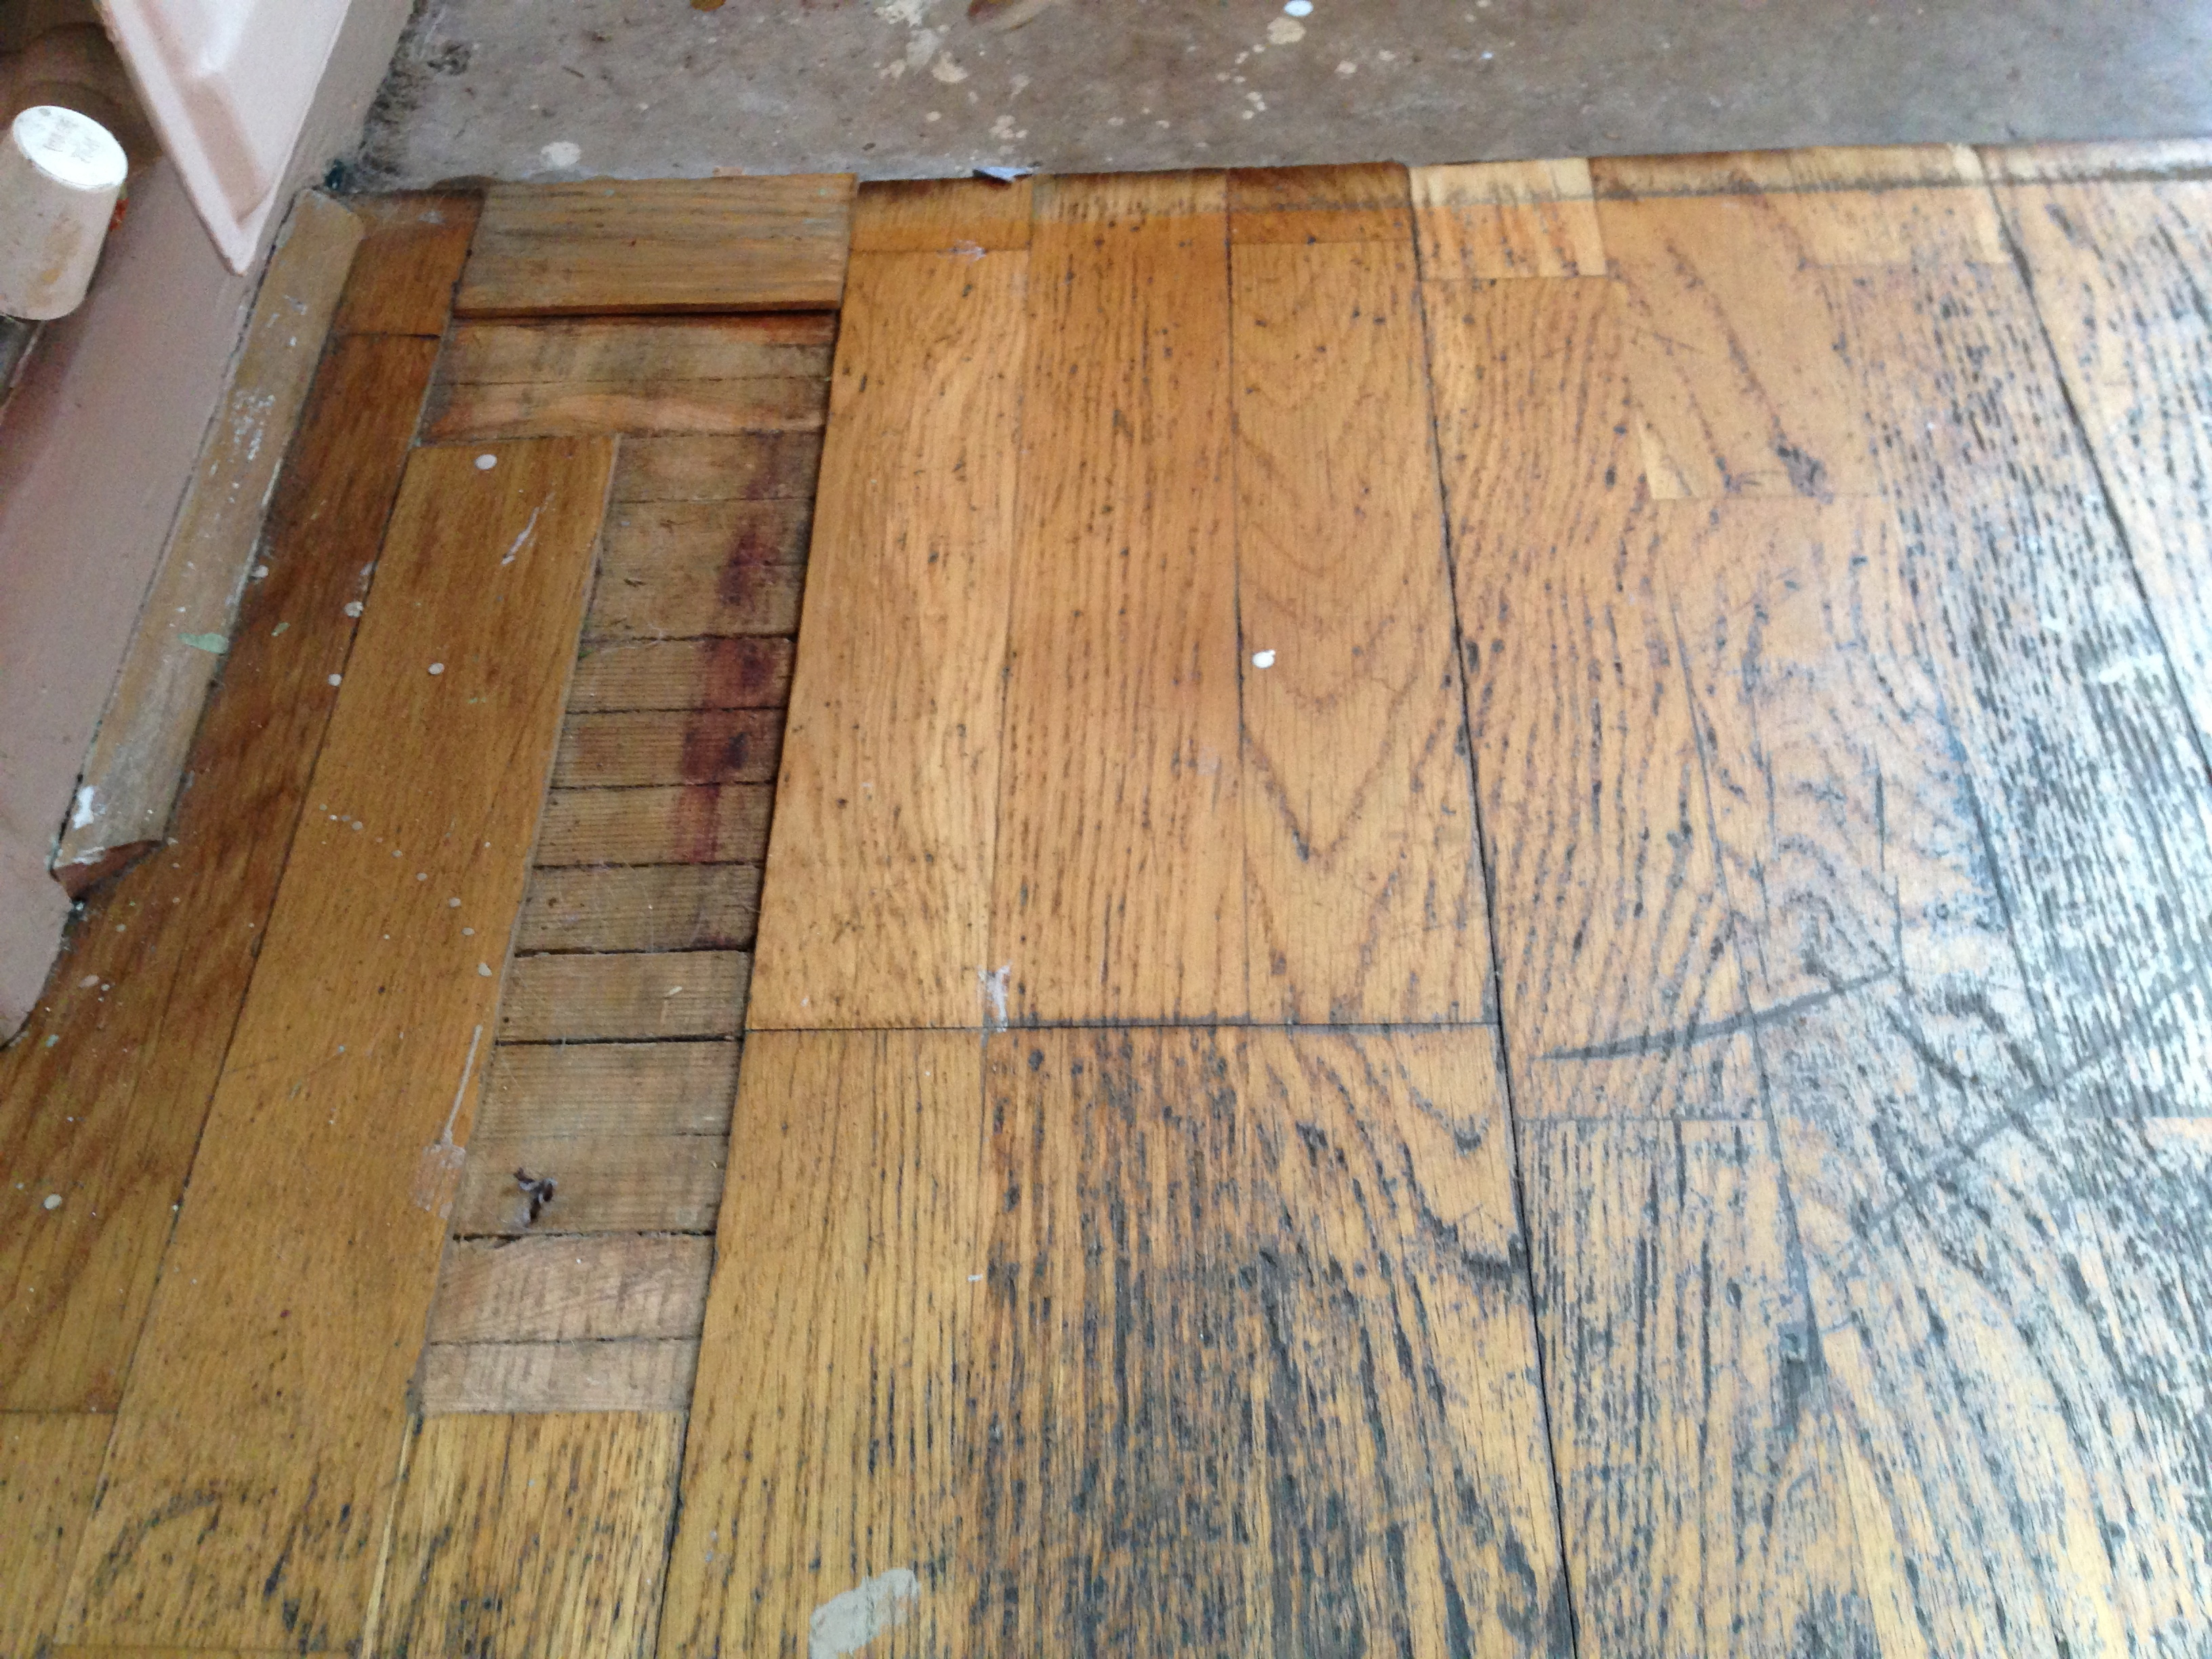 Oak laminate floor with missing laminate wood strips